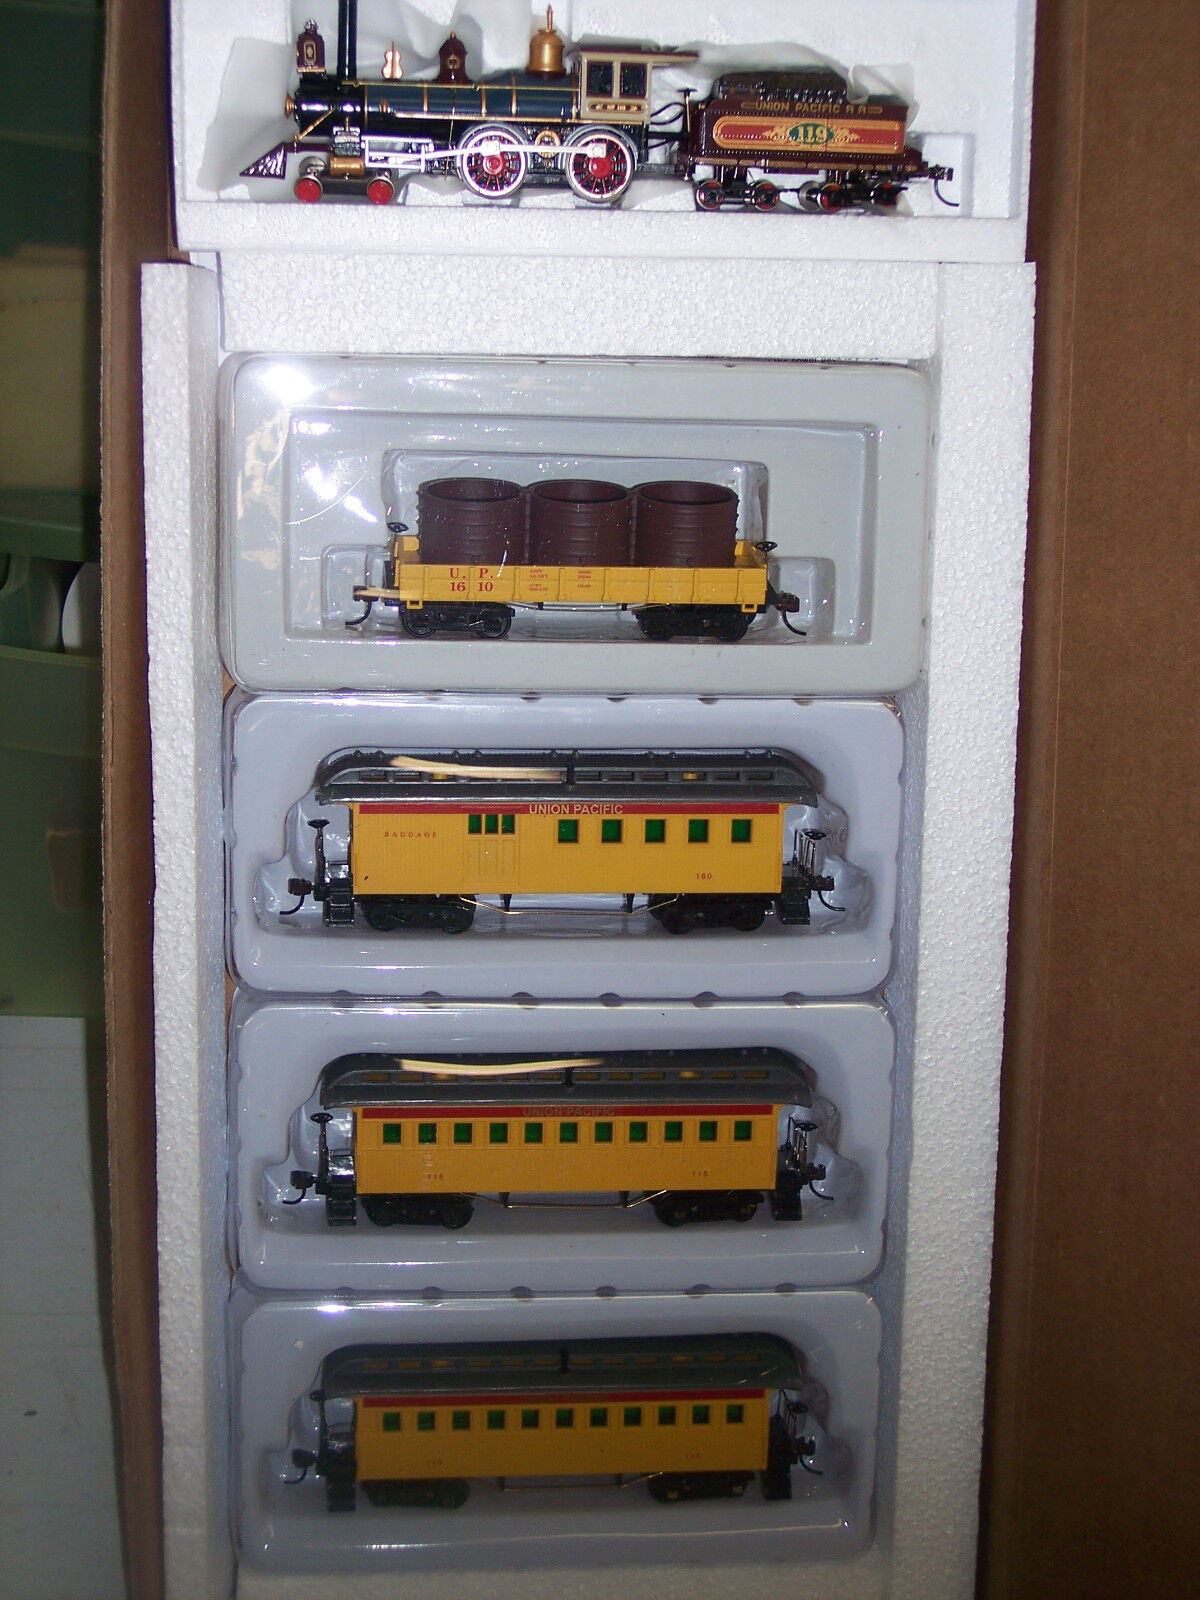 HO UNION PACIFIC R.R. TRAIN SET AMERICAN 4-4-0 OLD TIME LOCOMOTIVE RRUP-010